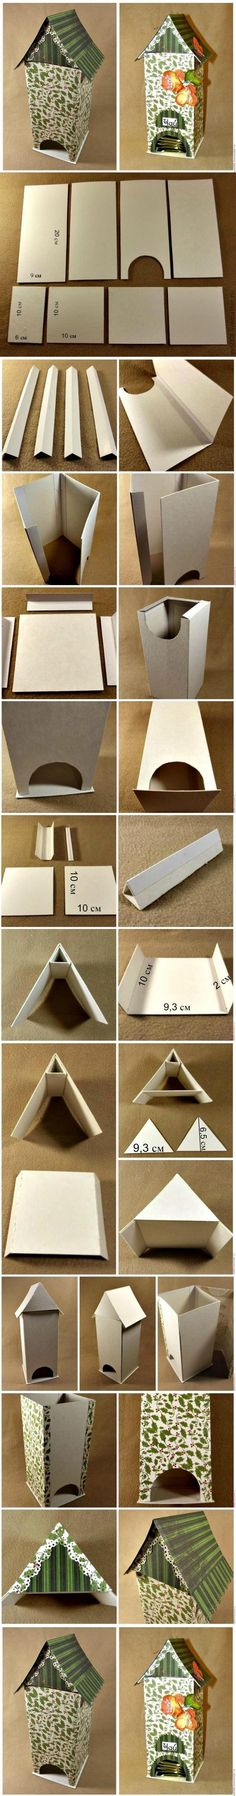 Shoebox Crafts  : DIY Cardboard Tea Bag Dispenser